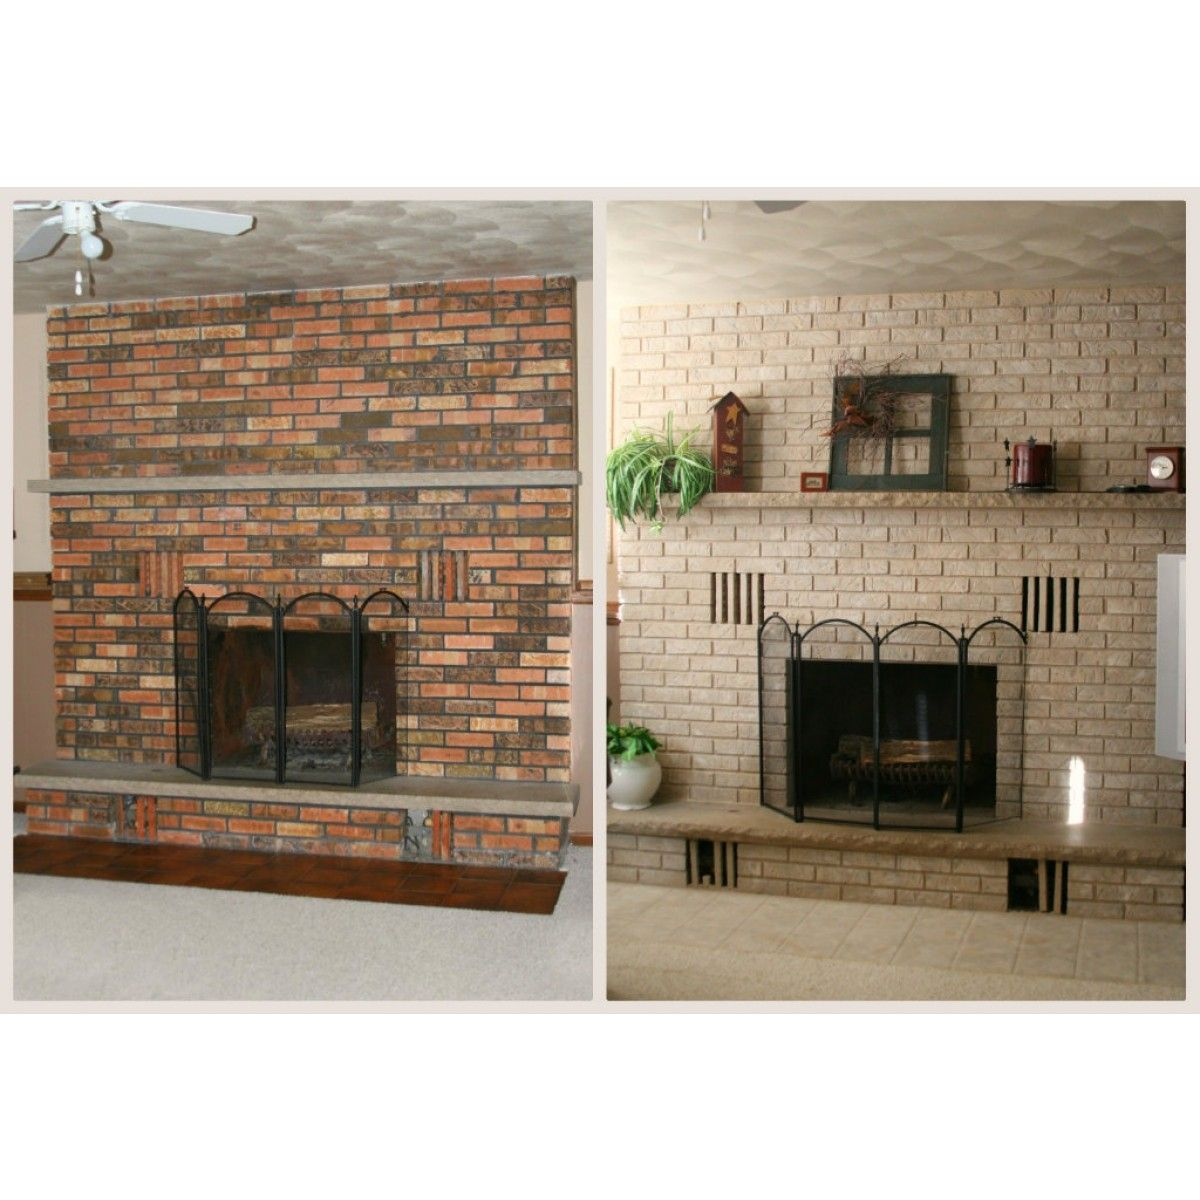 Brick Anew Fireplace Paint Kit in Brickwall whitewash